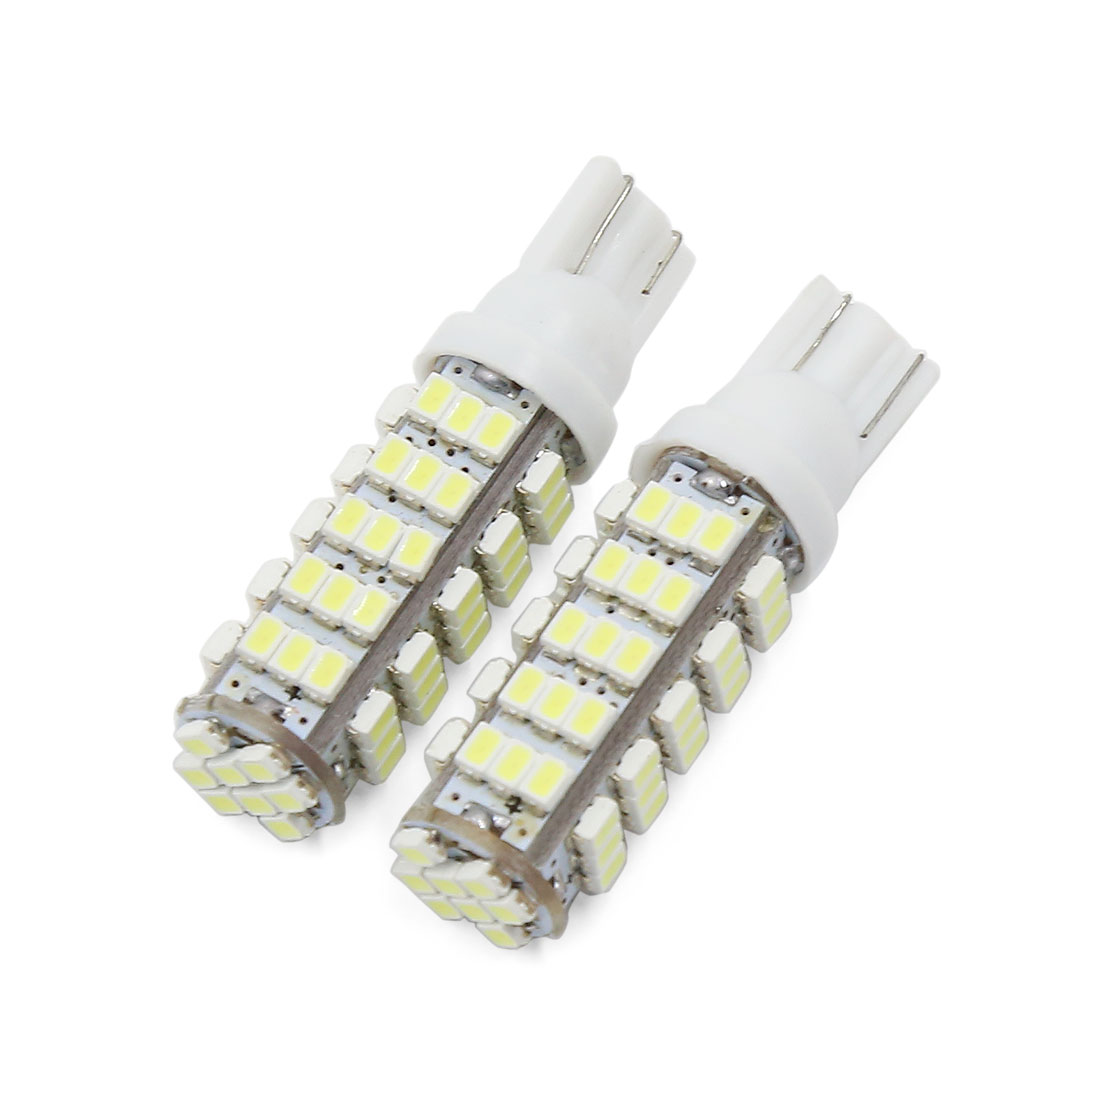 2pcs T10 68 SMD LED Wedge Light Turn Corner Tail Stop Bulb White 12V Interior